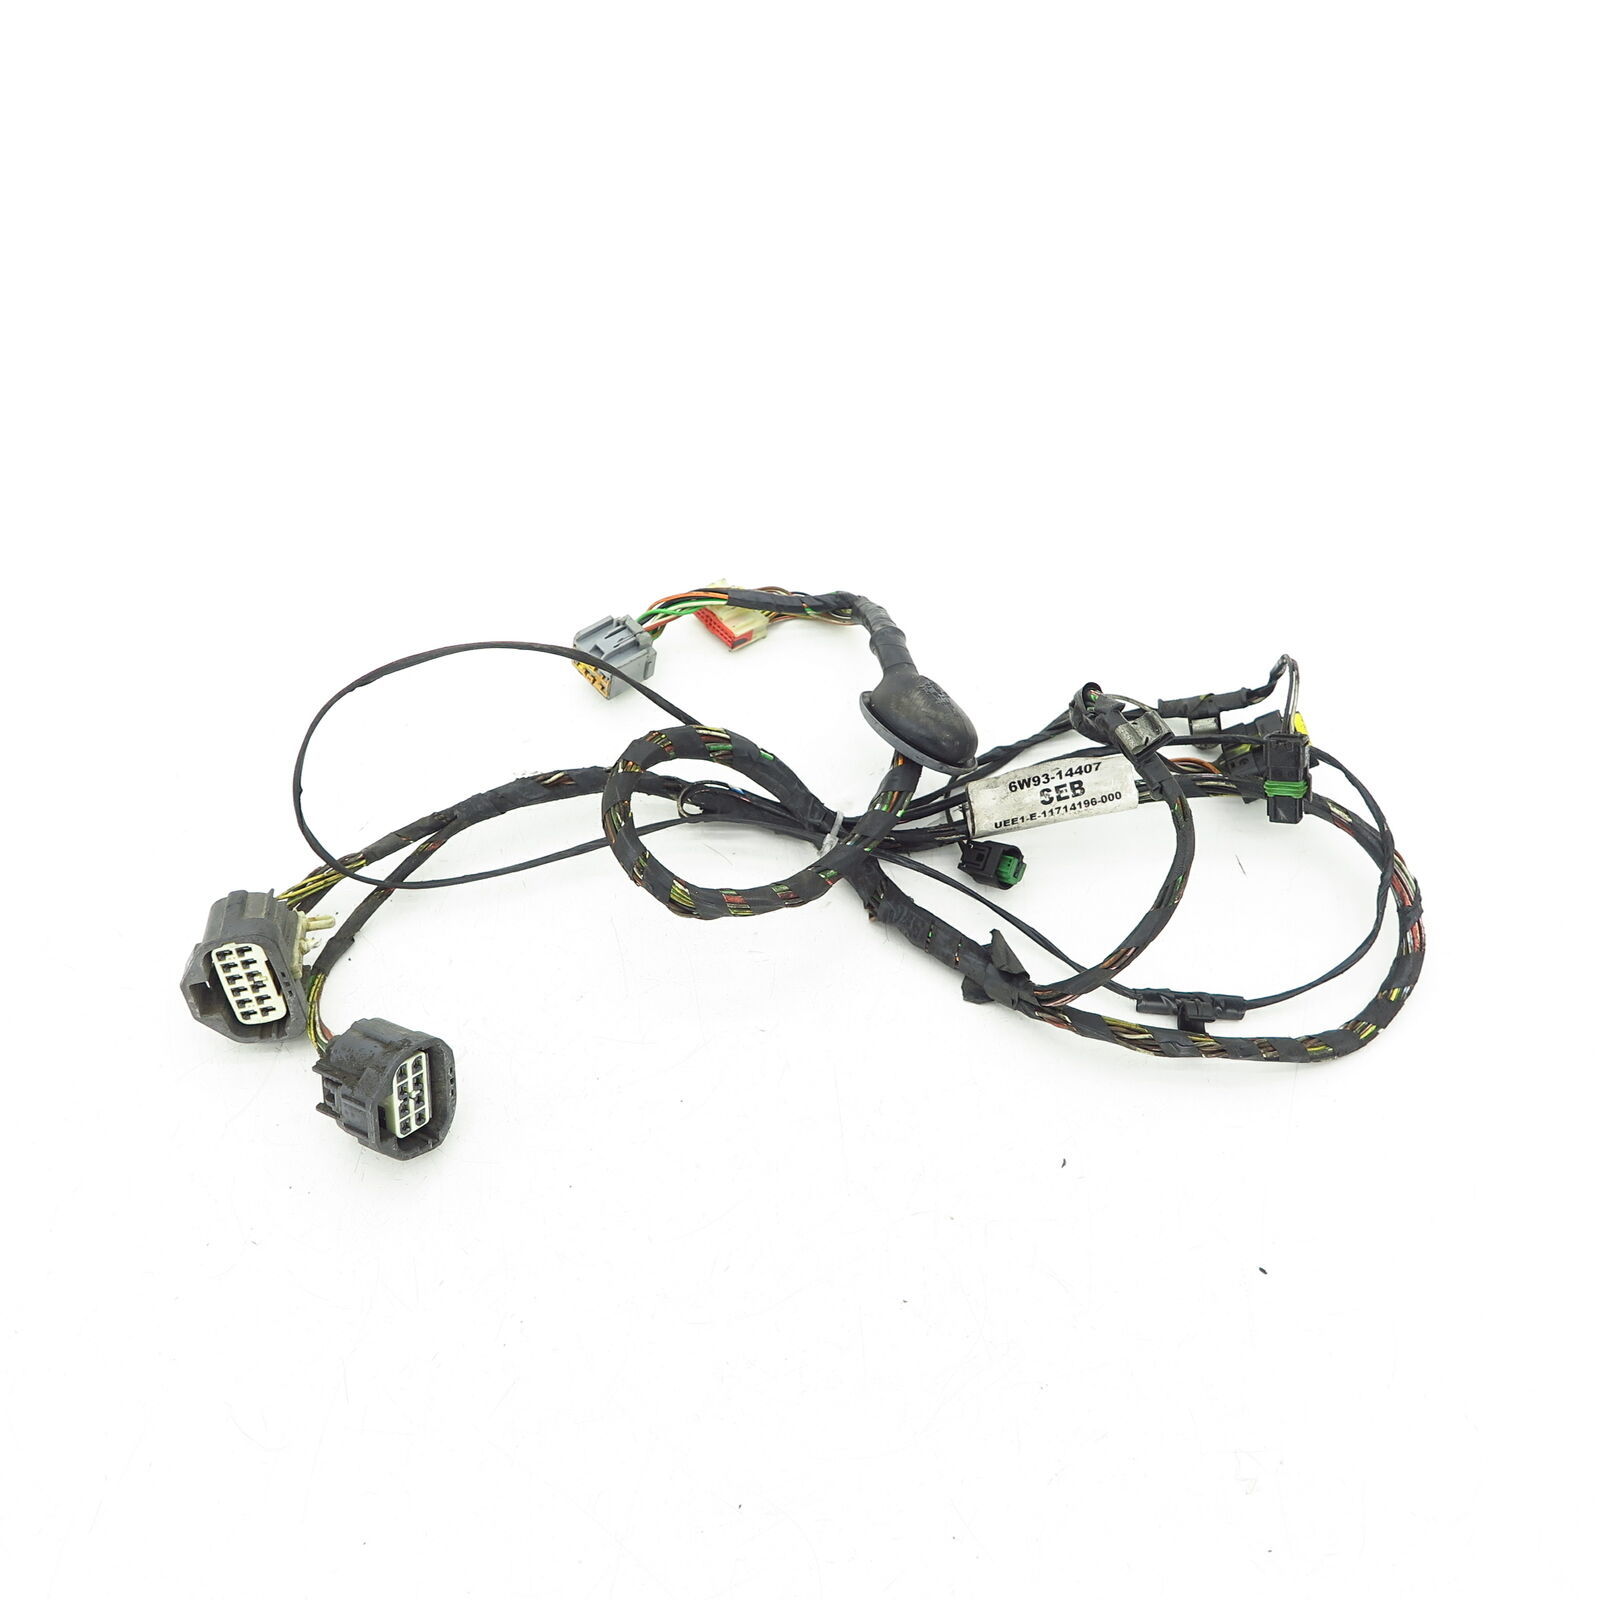 Jaguar Wiring Harness Fuel Pump Xj X350 X358 6 6w93 14407 3eb 1 Of 1only Available